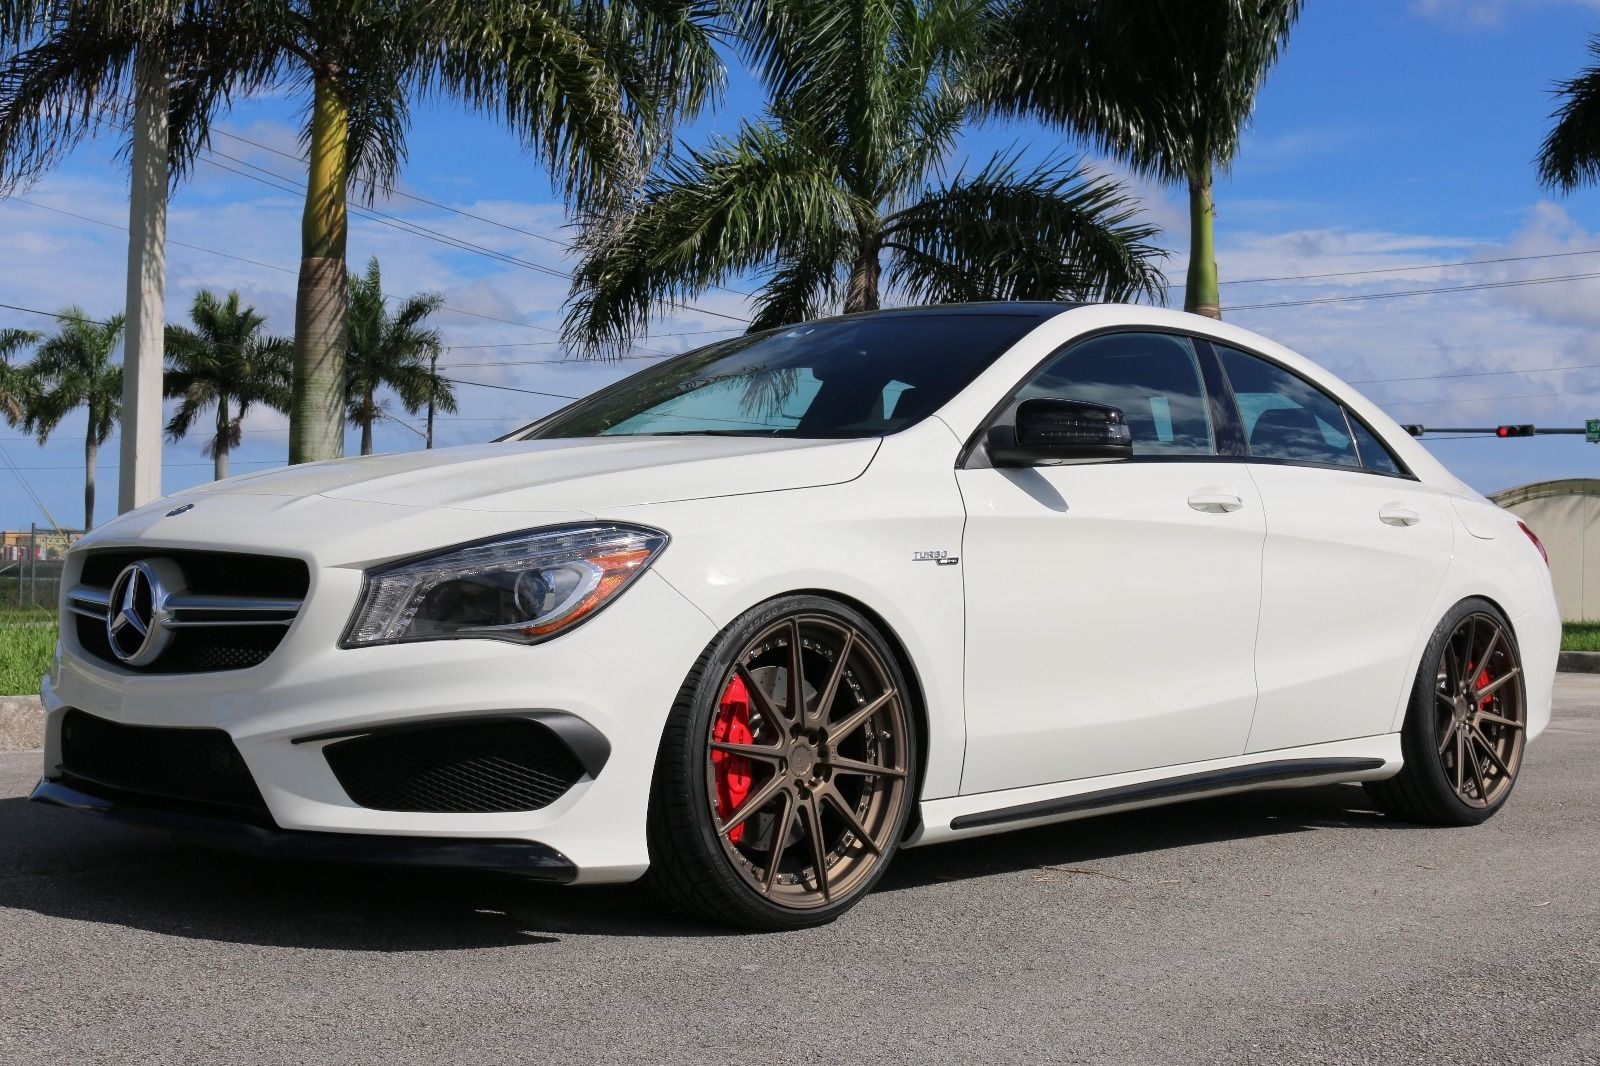 2014 mercedes benz cla45 amg on adv1 m v2 sl wheels. Black Bedroom Furniture Sets. Home Design Ideas